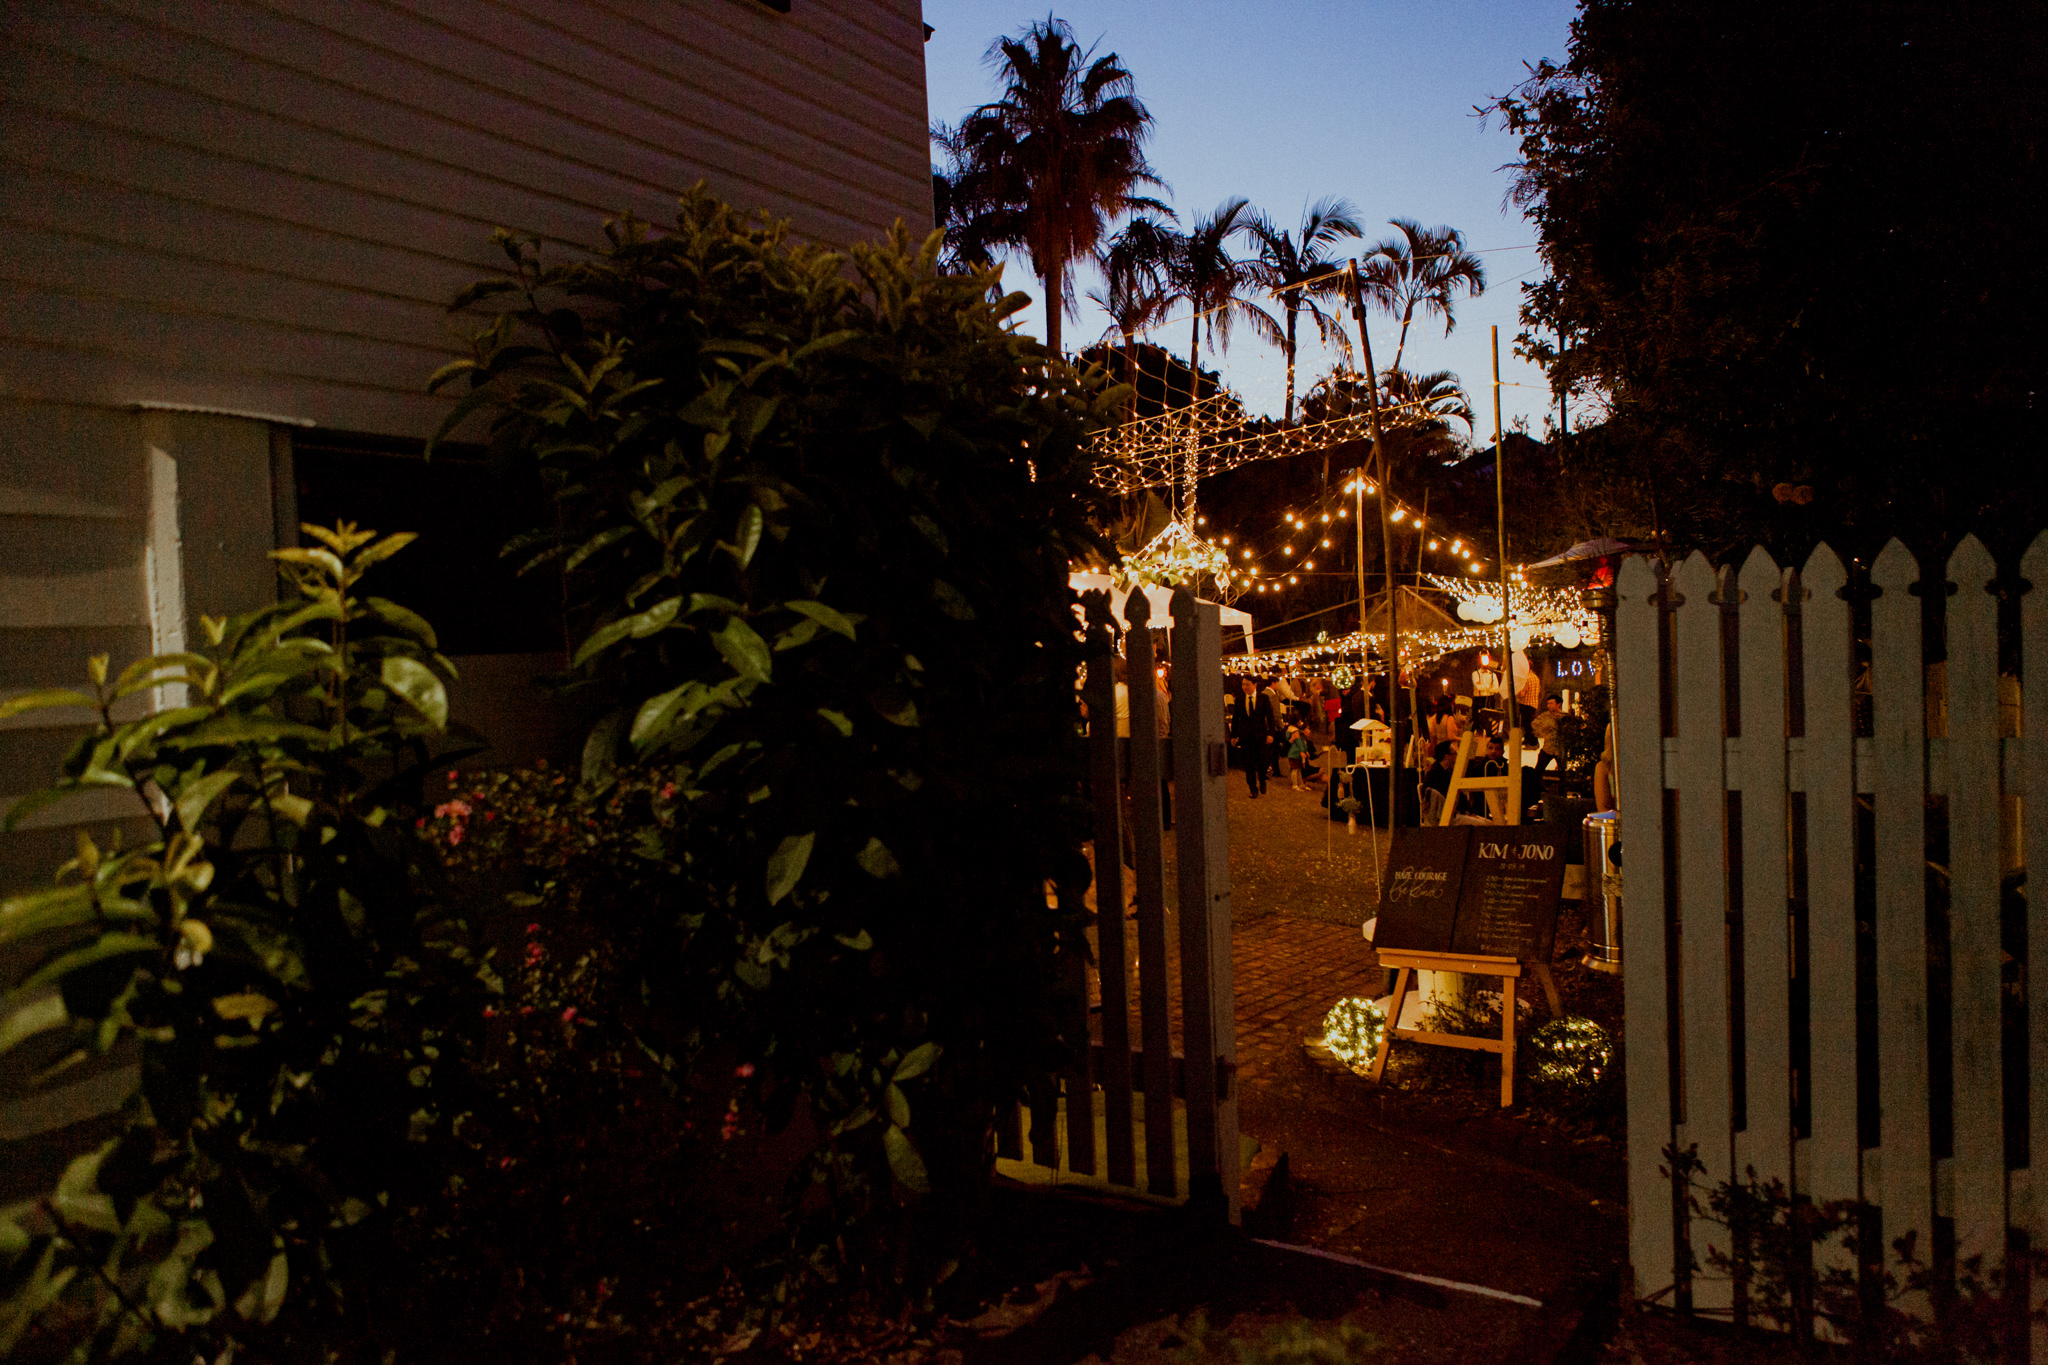 Side alley of a house leading to a backyard party lit with fairy lights